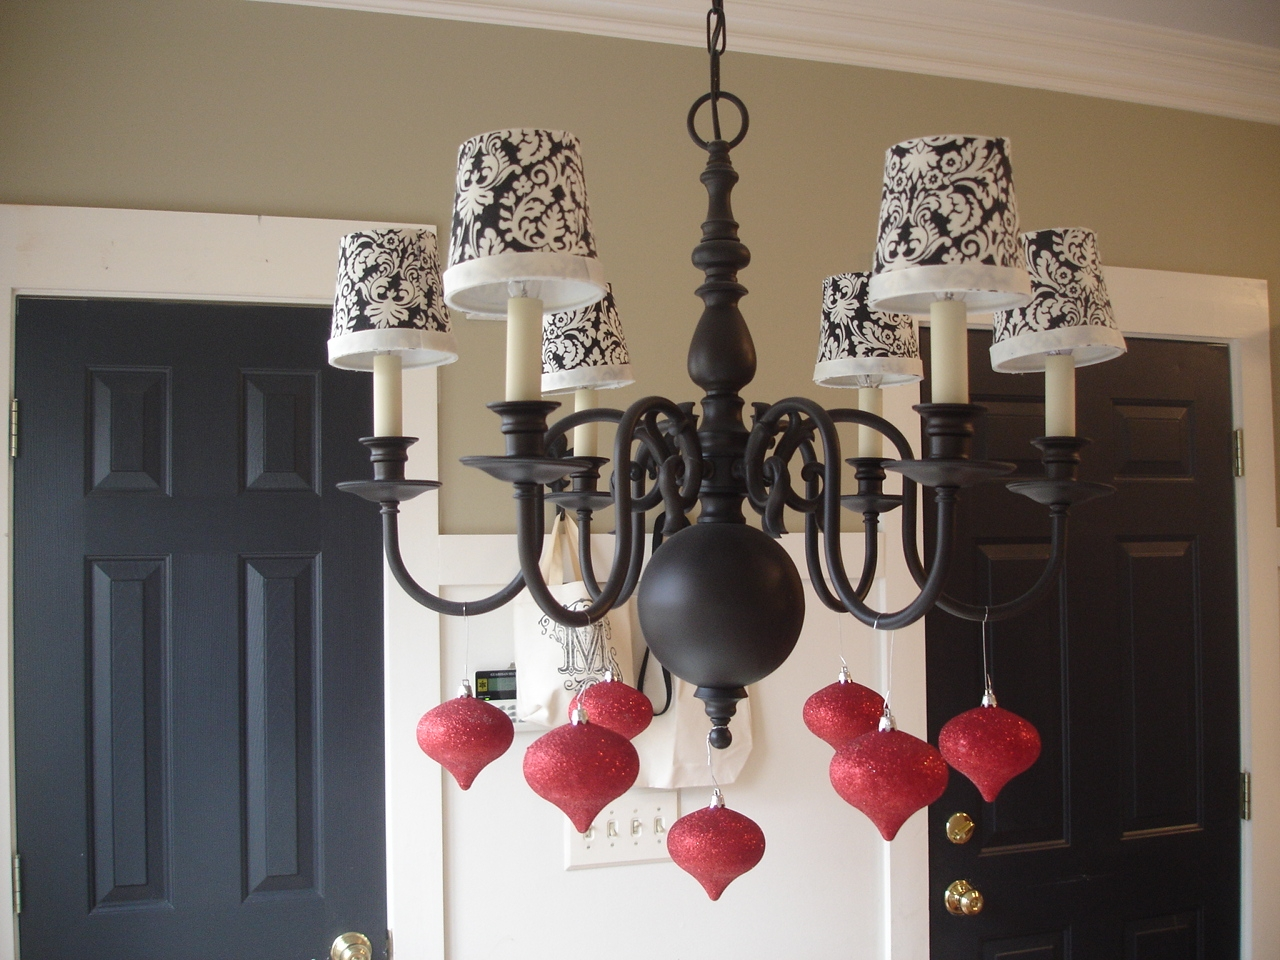 Awesome Black Chandelier With Shades 148 Black Chandelier With Red With Black Chandeliers With Shades (Image 3 of 25)